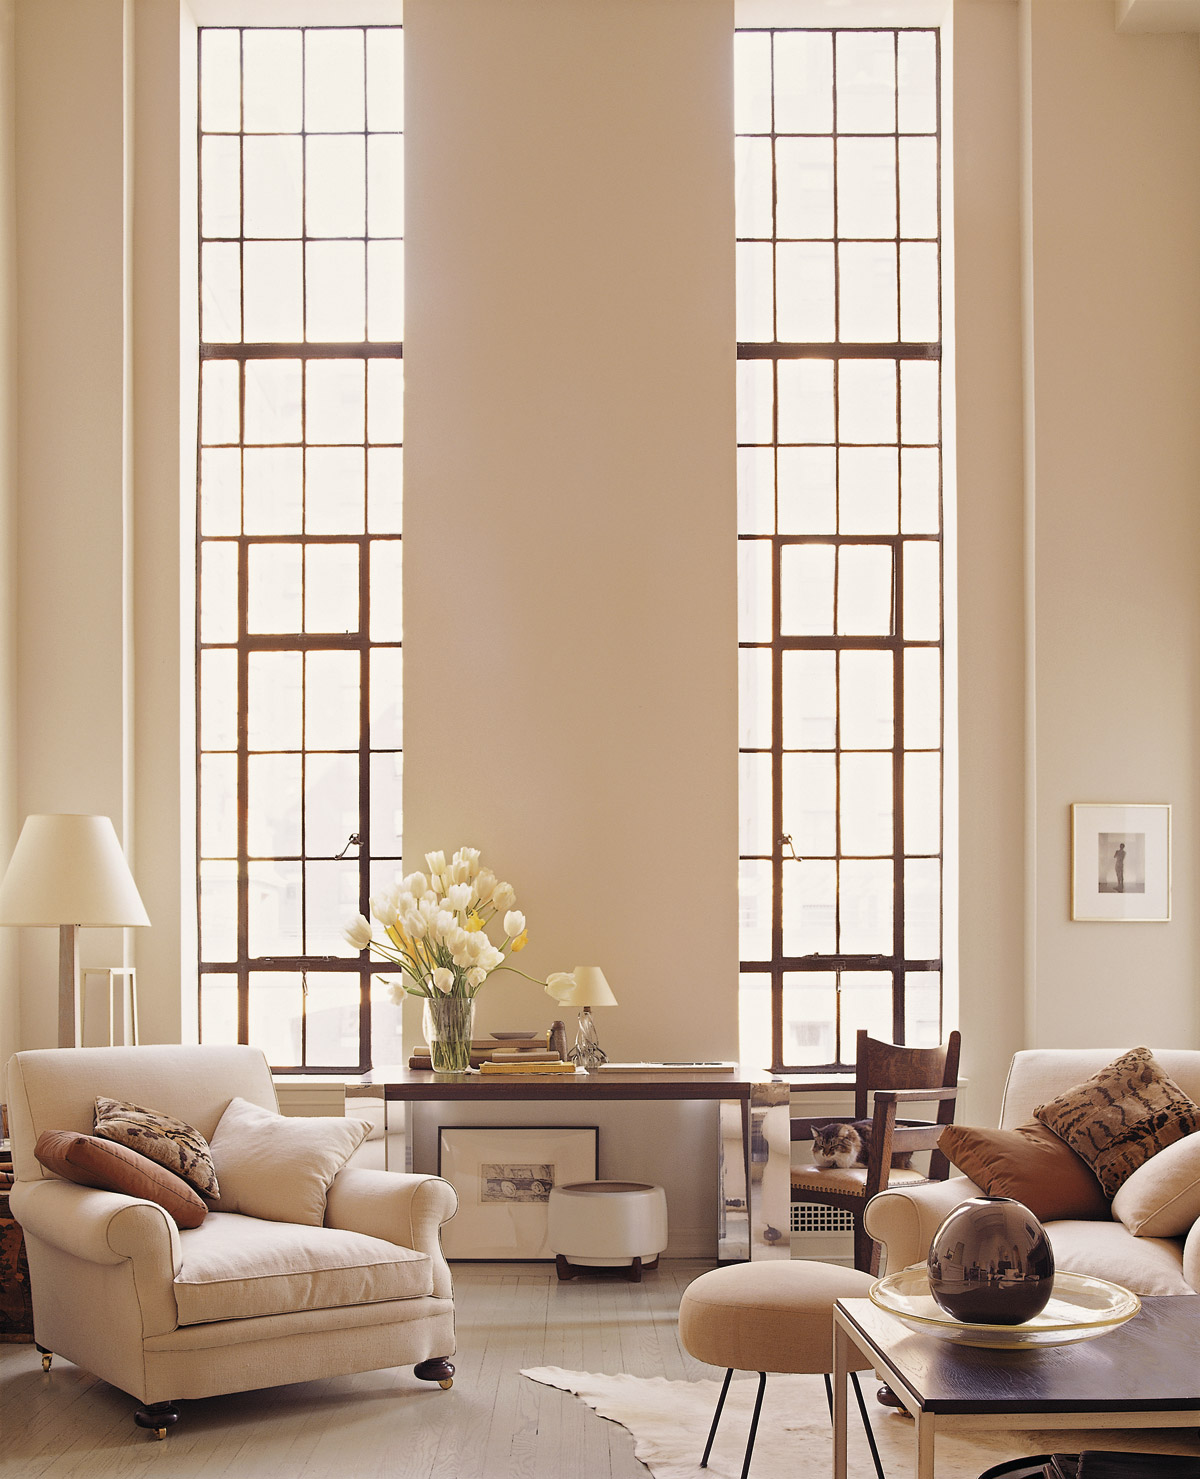 10 questions with thomas o 39 brien for 3 living room windows